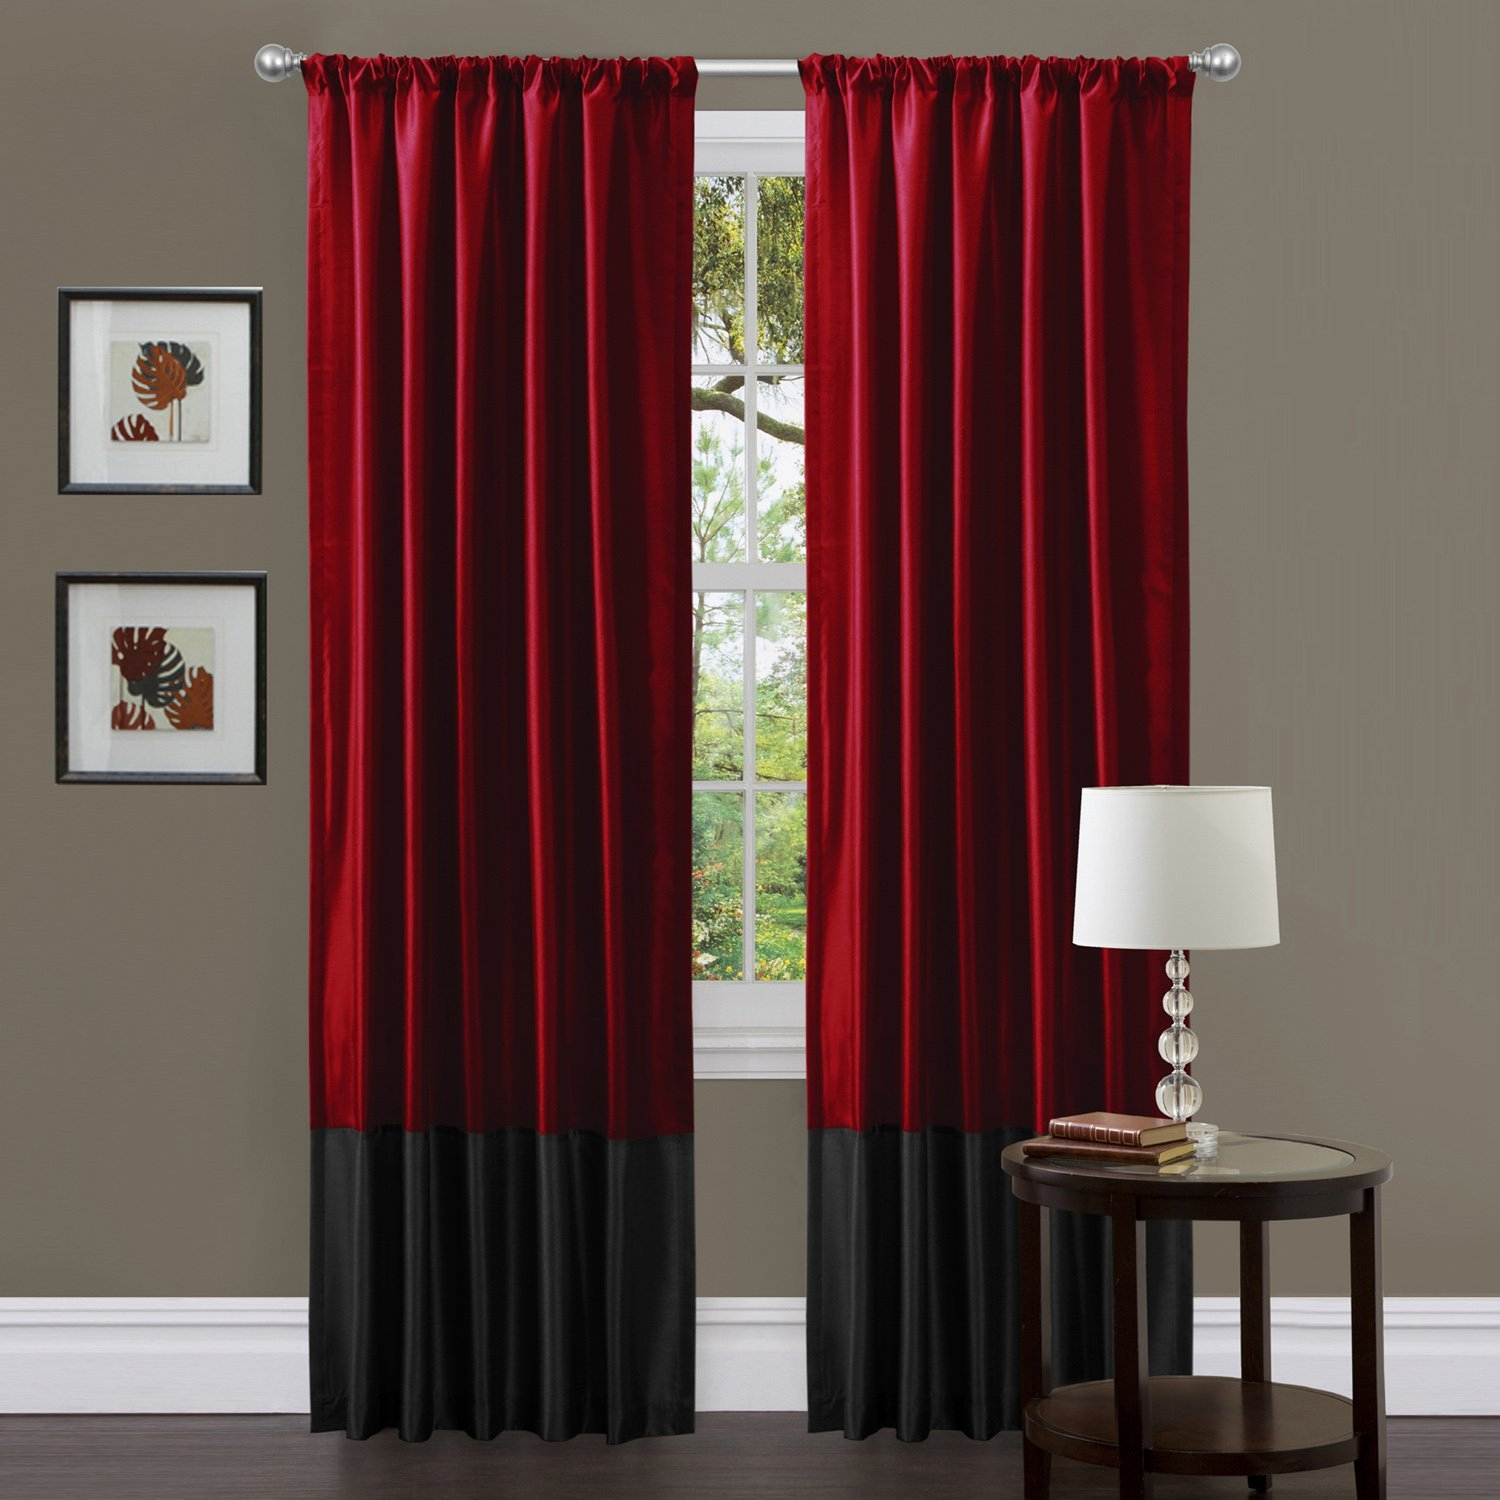 Warm Burgundy Curtains For Living Room — Office Pdx Kitchen Pertaining To Kitchen Burgundy/white Curtain Sets (View 10 of 20)